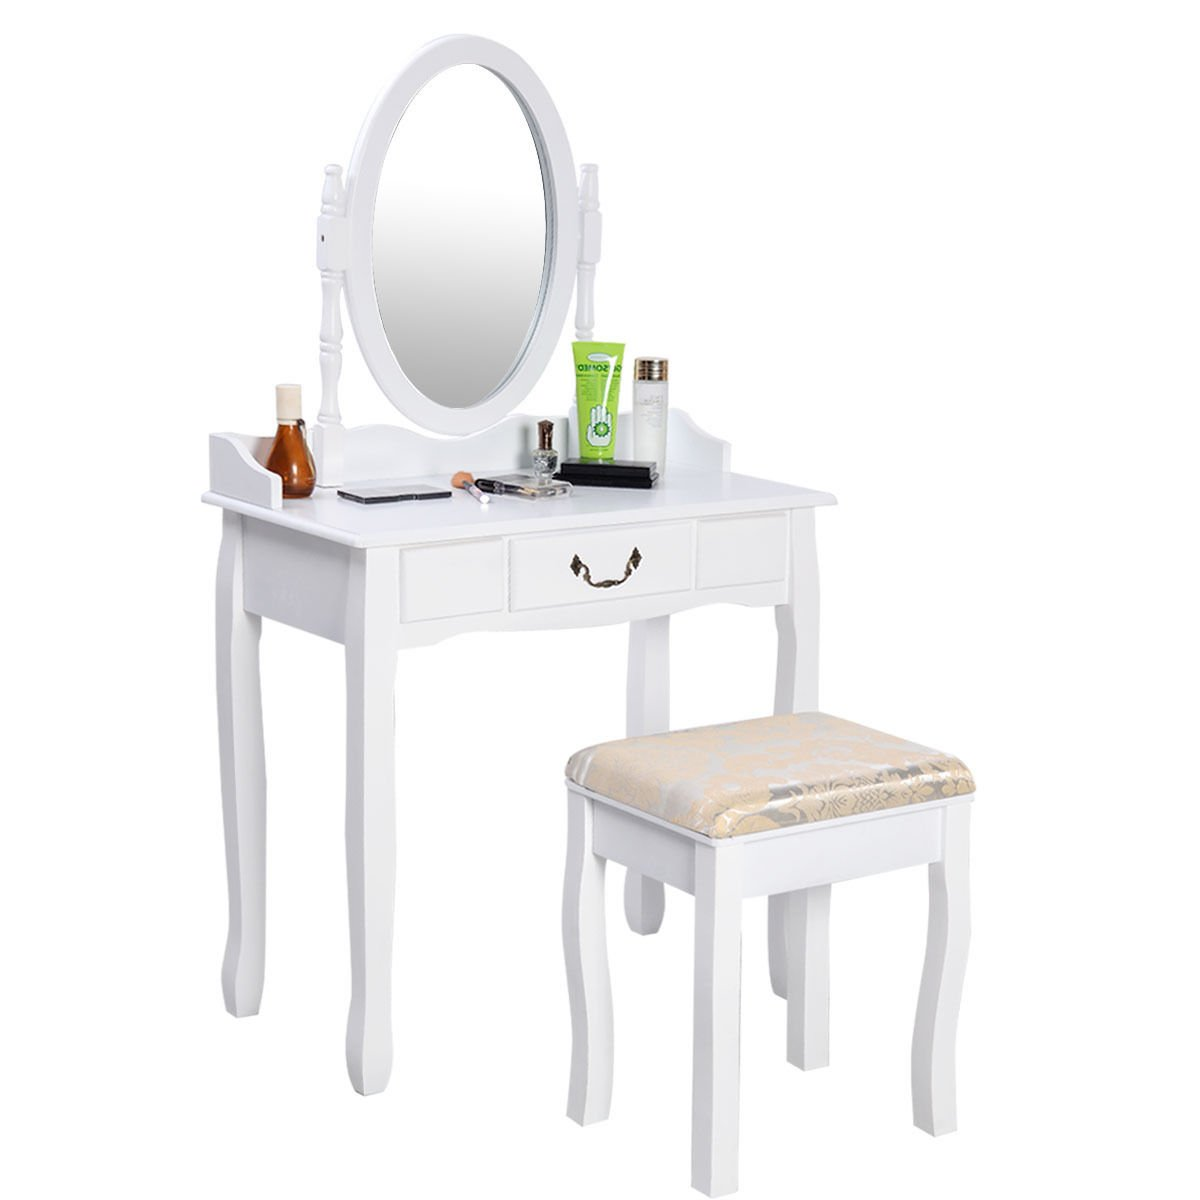 Giantex Vanity Table w/Cushioned Stool Bench Jewelry Makeup Dresser Desk w/ 1 Drawer Dressing Table and Stool Set Bedroom Bathroom Furniture 360° Spinning Round Mirror, White